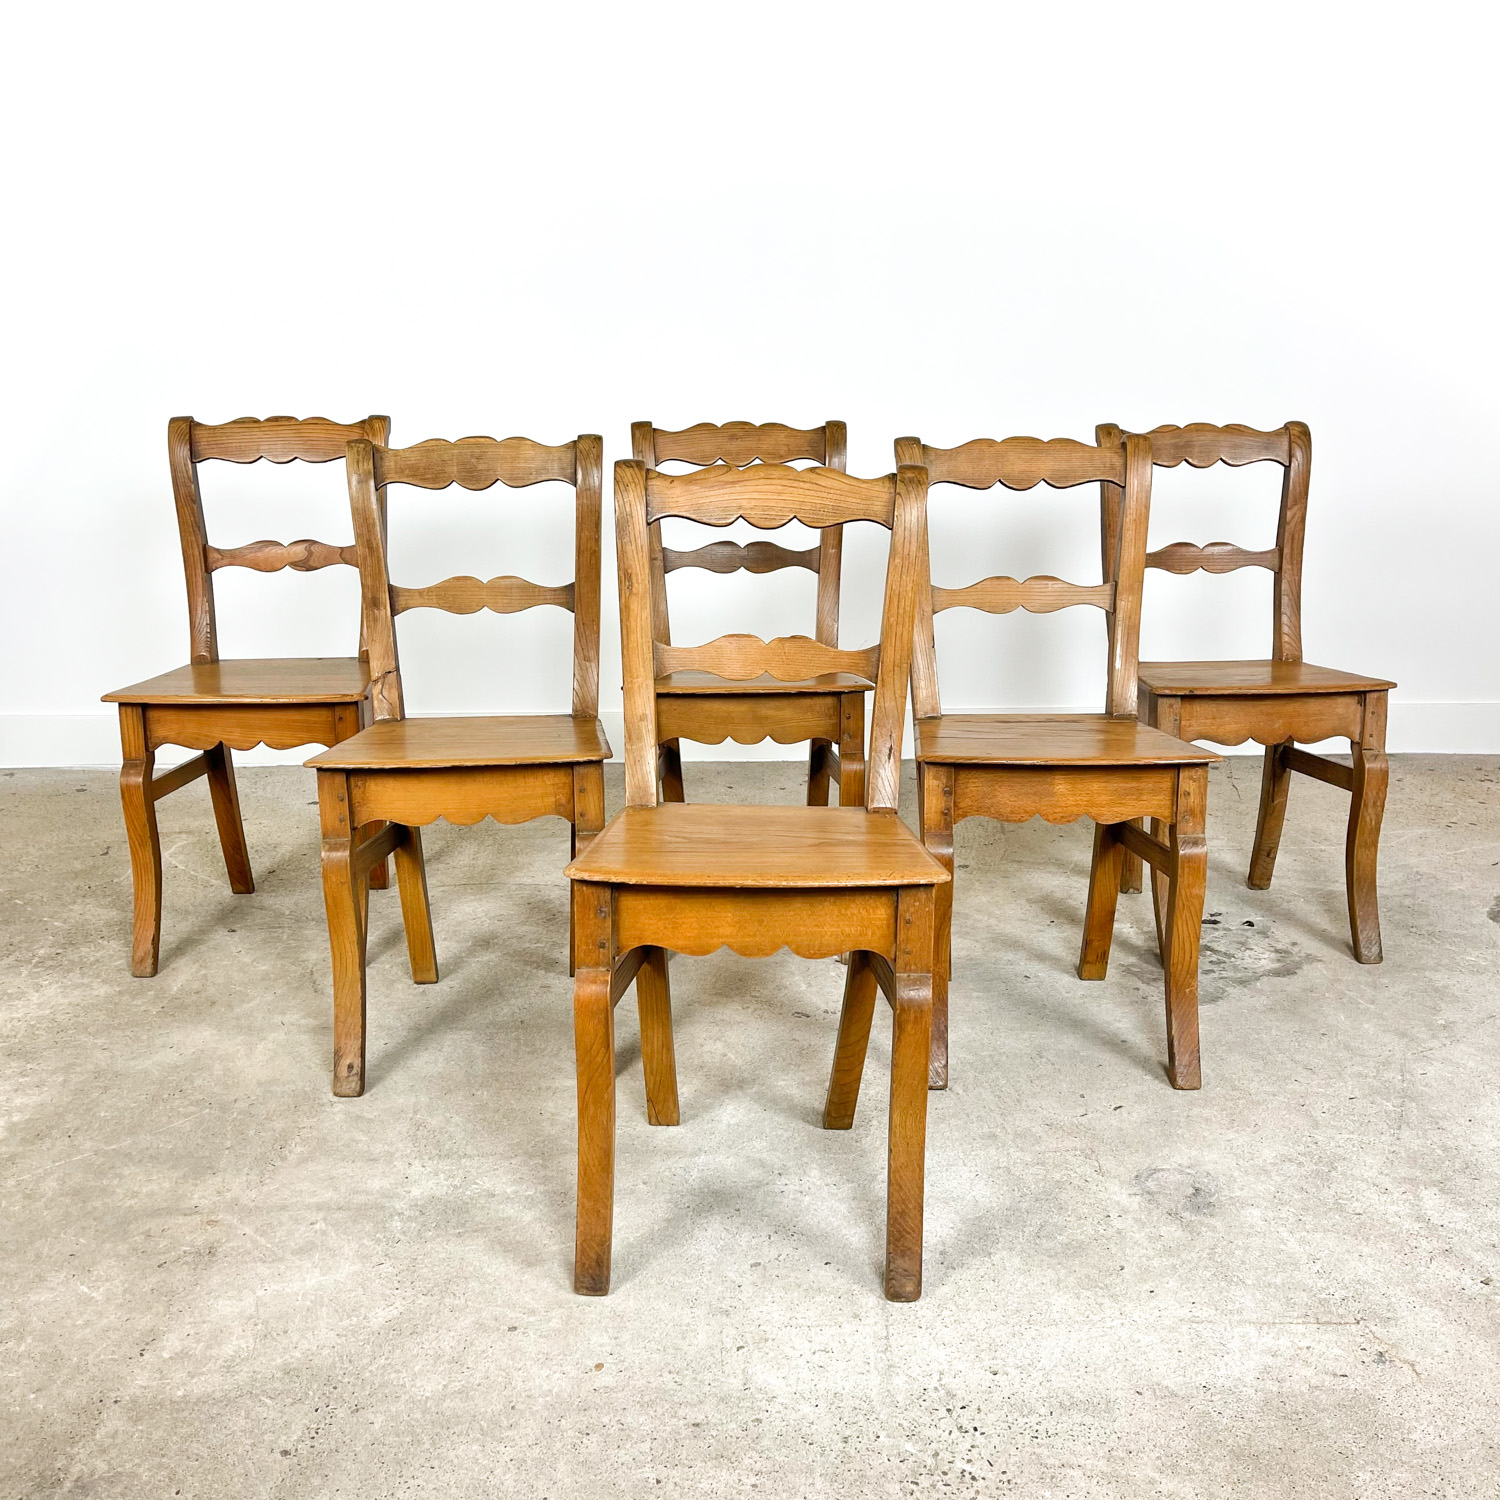 Set of 6 antique swedish dining chairs